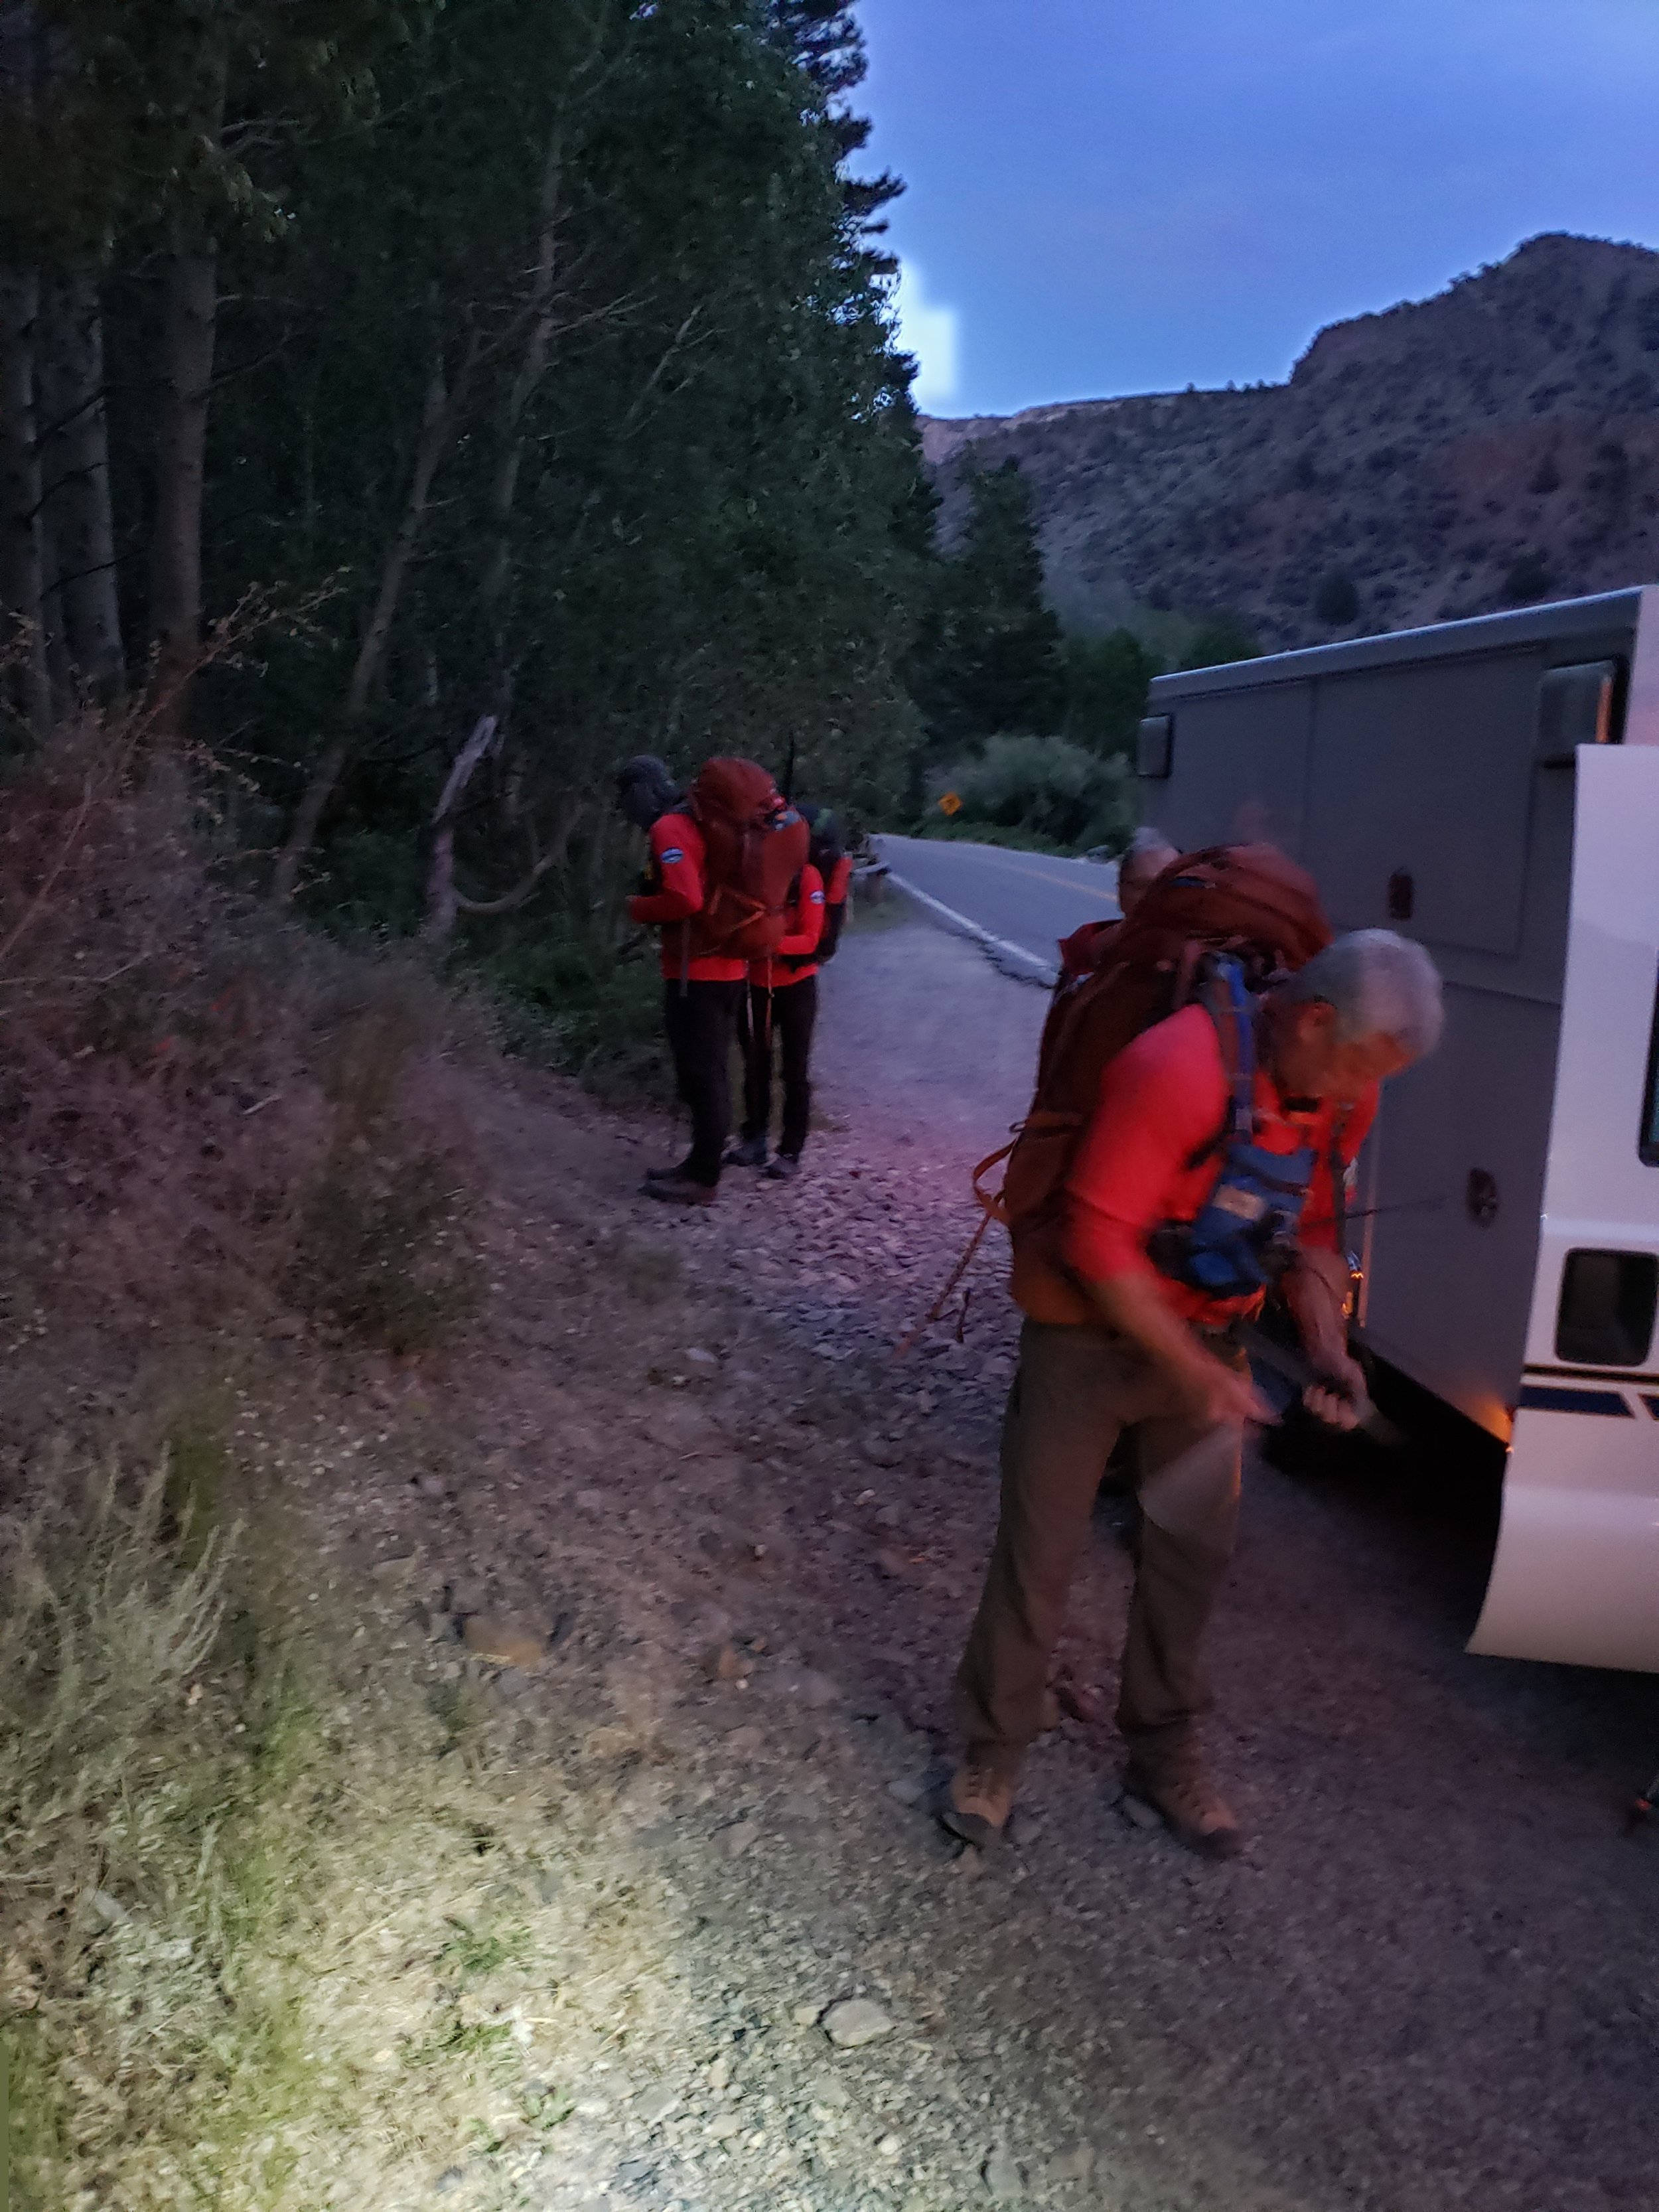 The field team preparing for a late-evening departure. Image by B. Beck